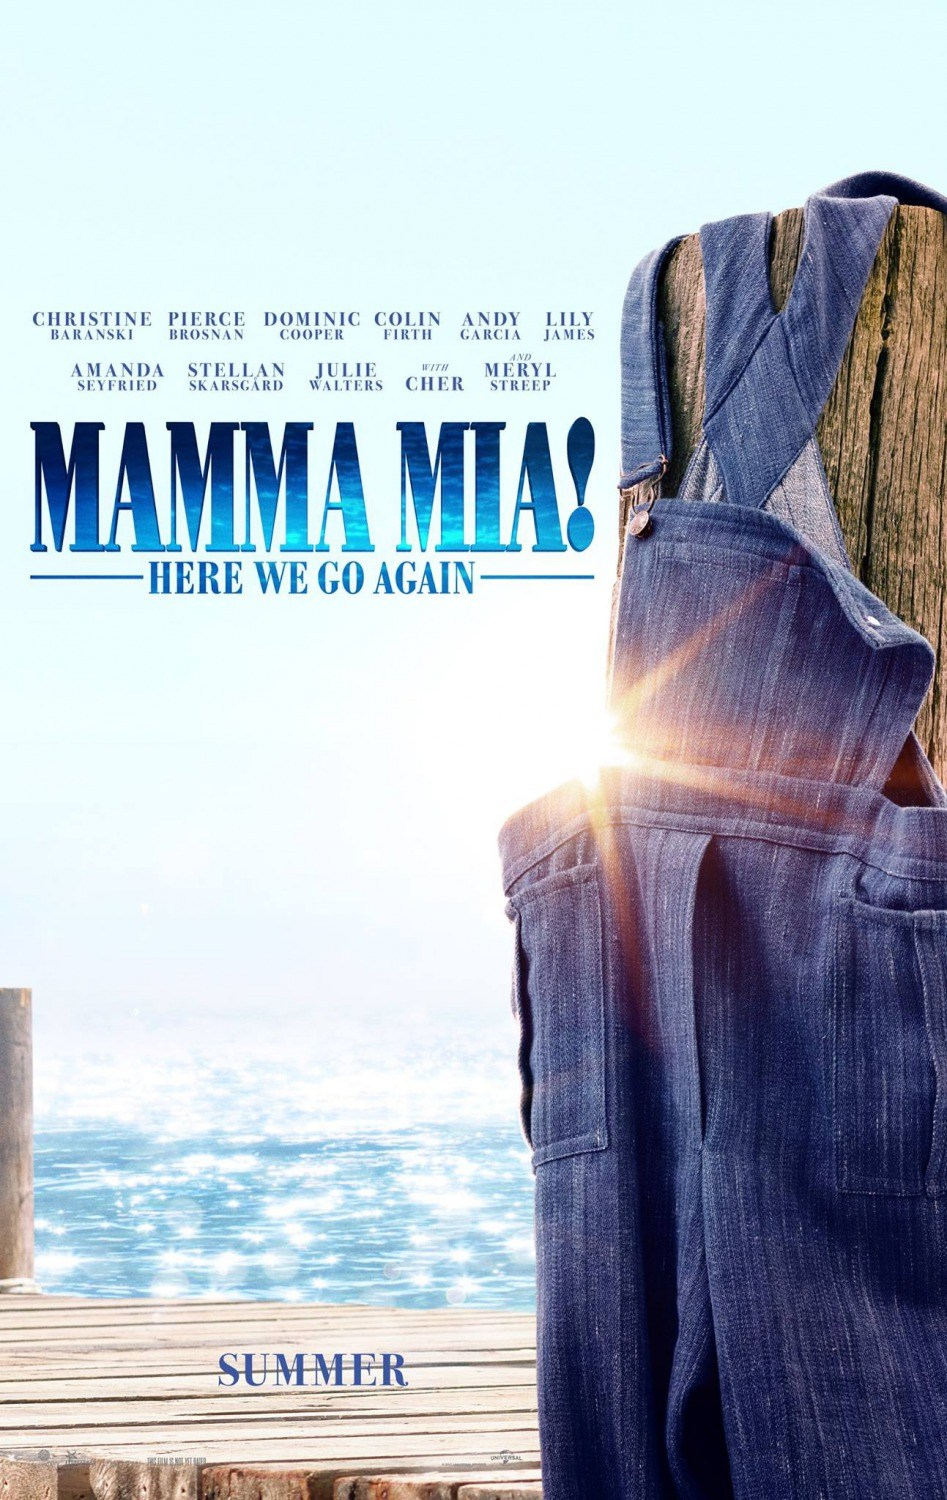 """Mamma Mia! Here We Go Again""이 나옵니다."